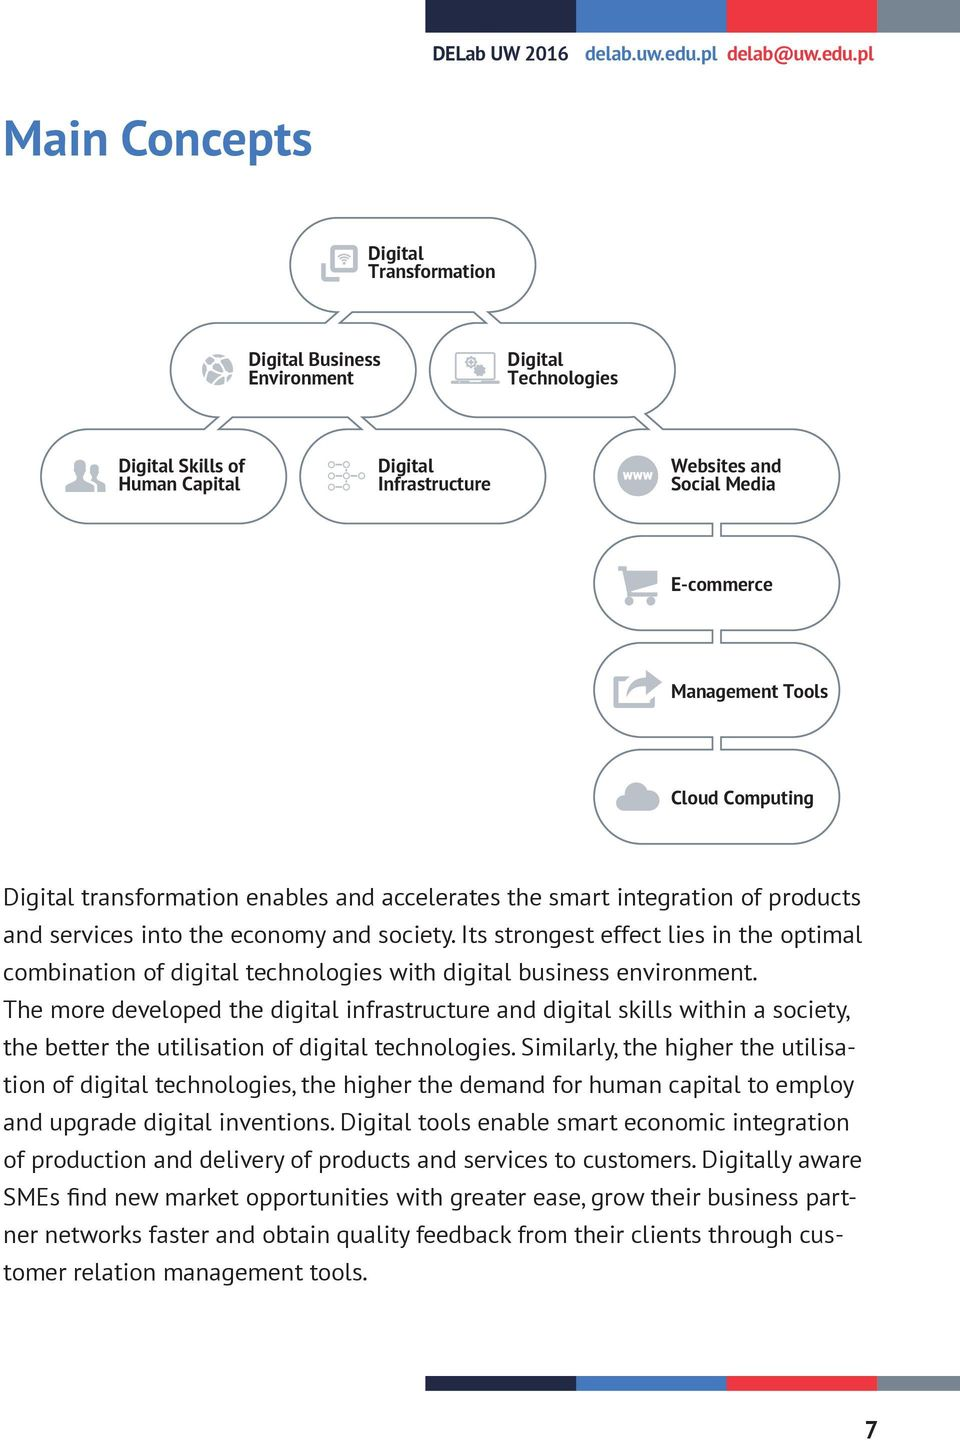 pl Main Concepts Digital Transformation Digital Business Environment Digital Technologies Digital Skills of Human Capital Digital Infrastructure Websites and Social Media E-commerce Management Tools